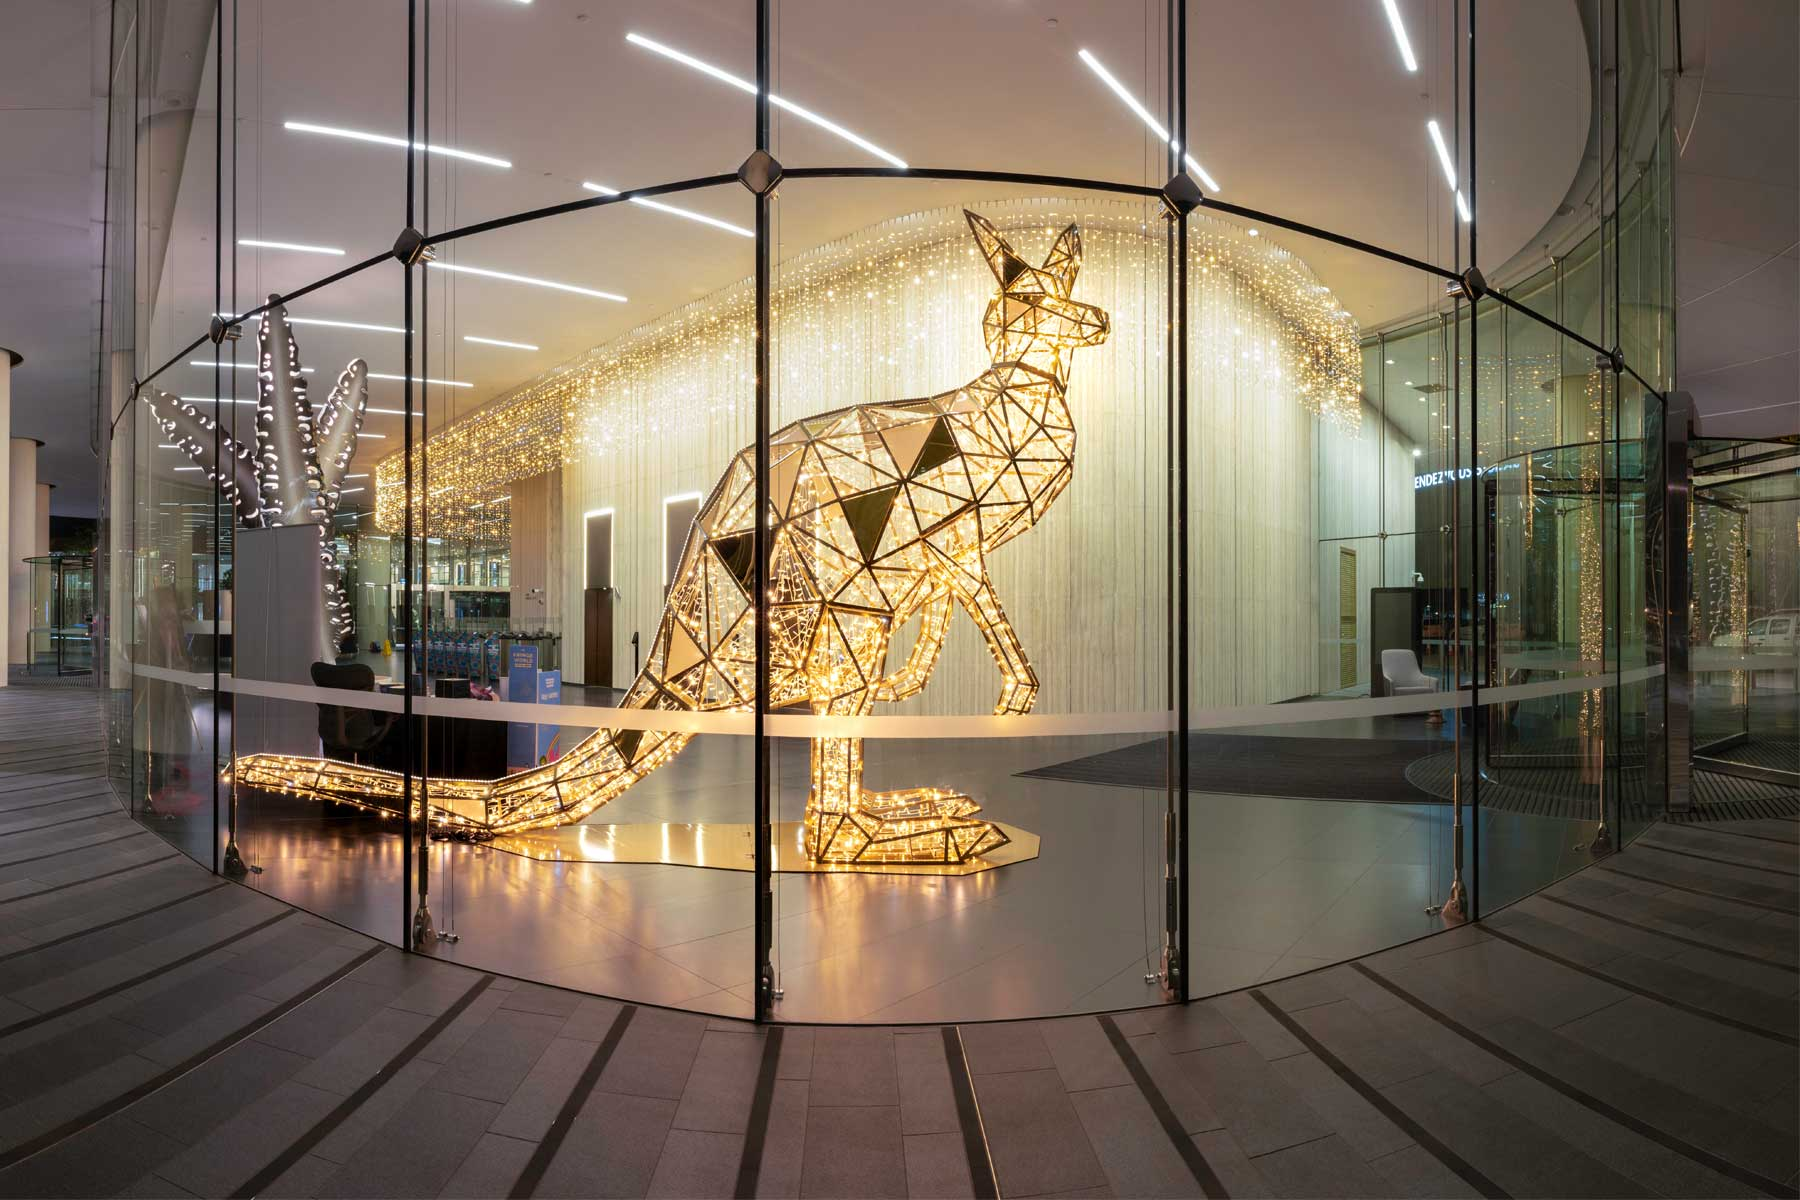 Four metre tall faceted Kangaroo lighting display and curtain lighting making up part of the Christmas display for the Mia Yellagonga corporate building in Perth